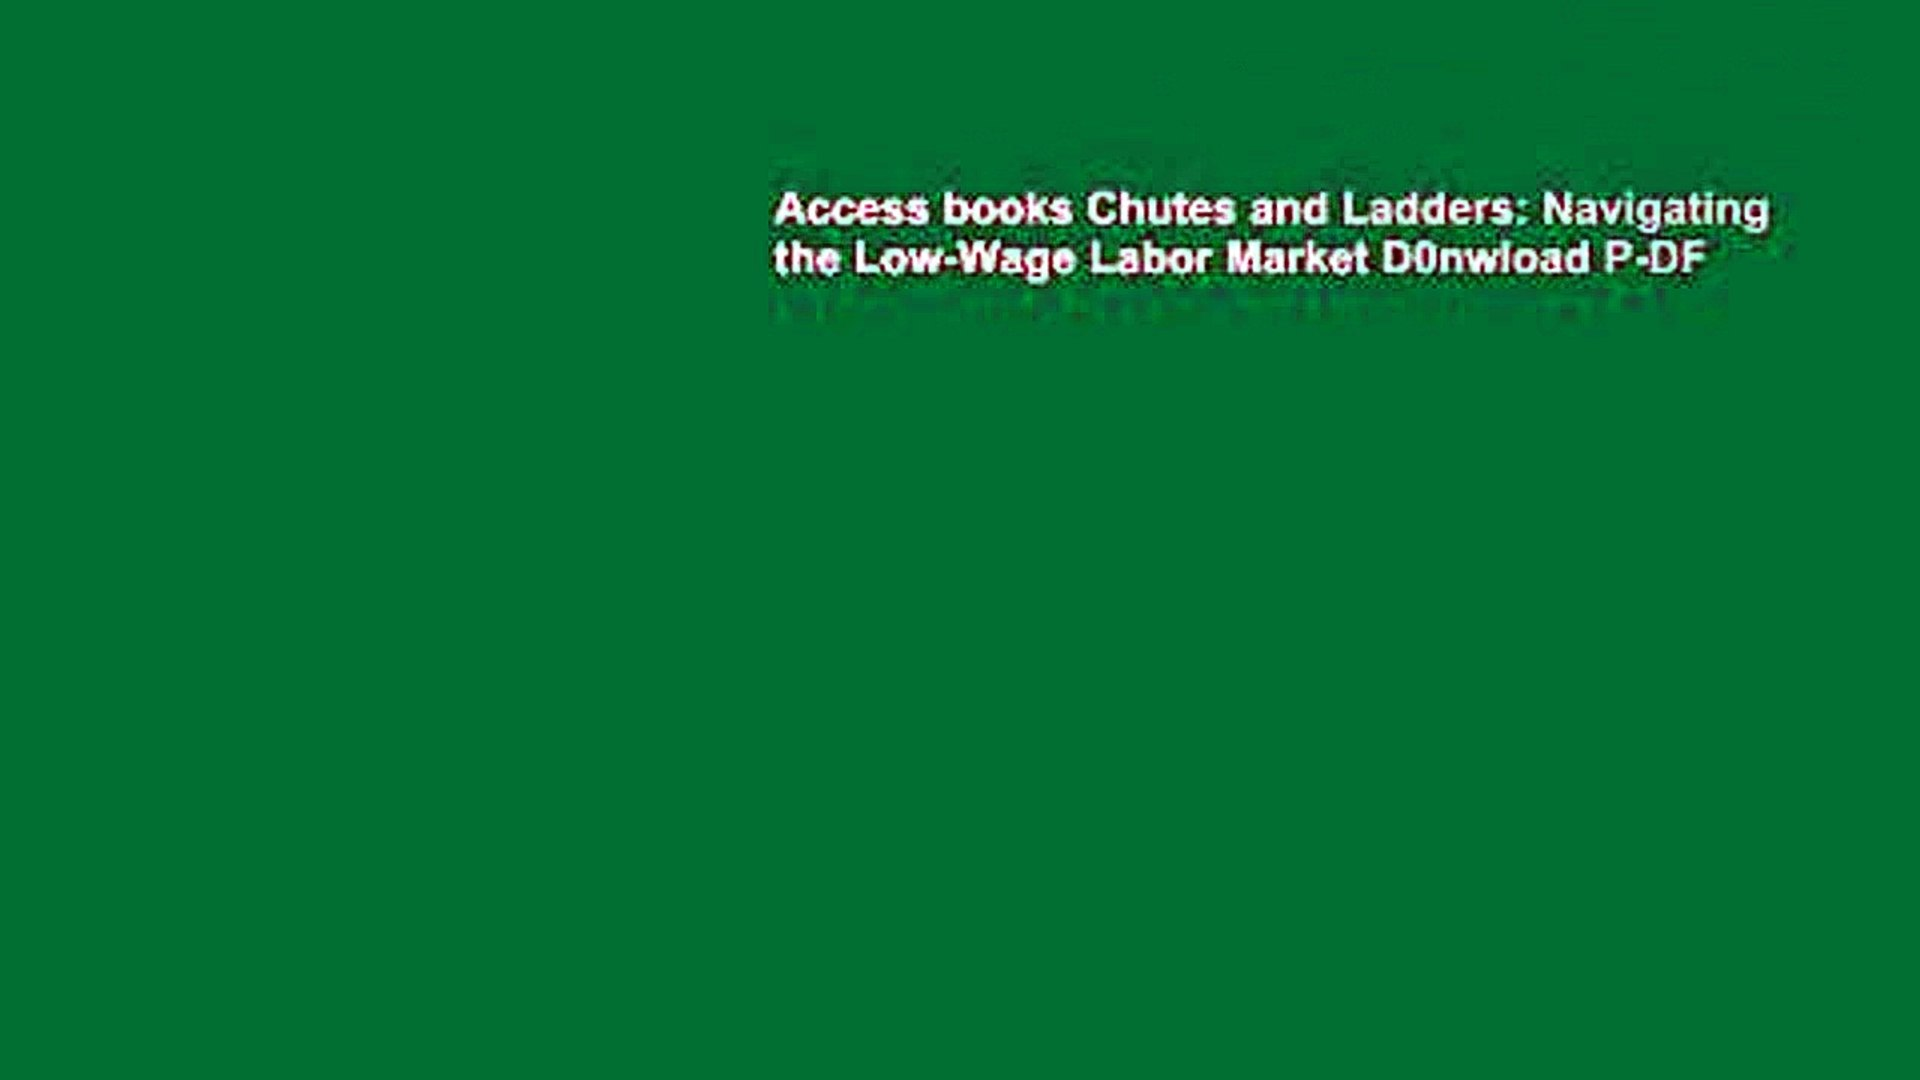 Access books Chutes and Ladders: Navigating the Low-Wage Labor Market D0nwload P-DF